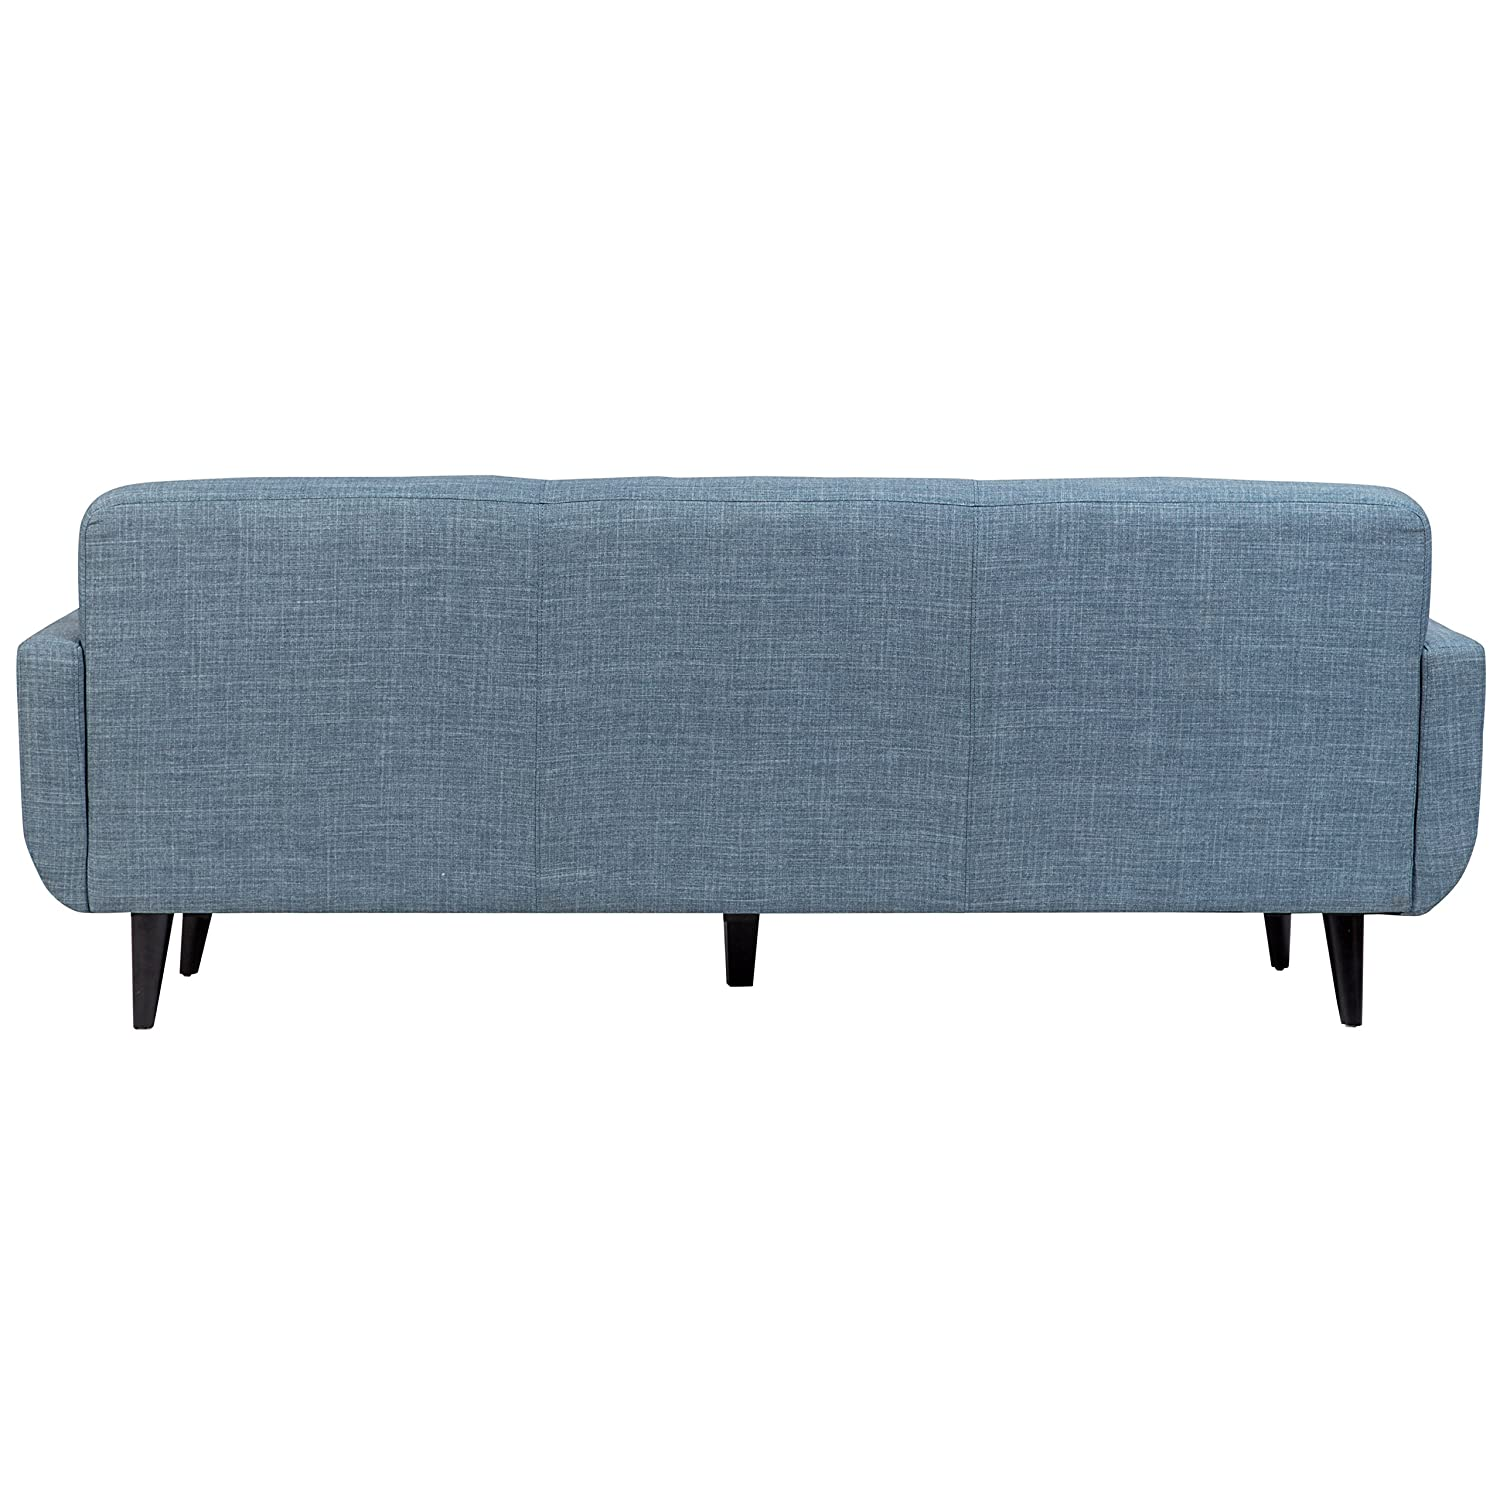 Porter Designs U7777 Casper Tufted Sofa